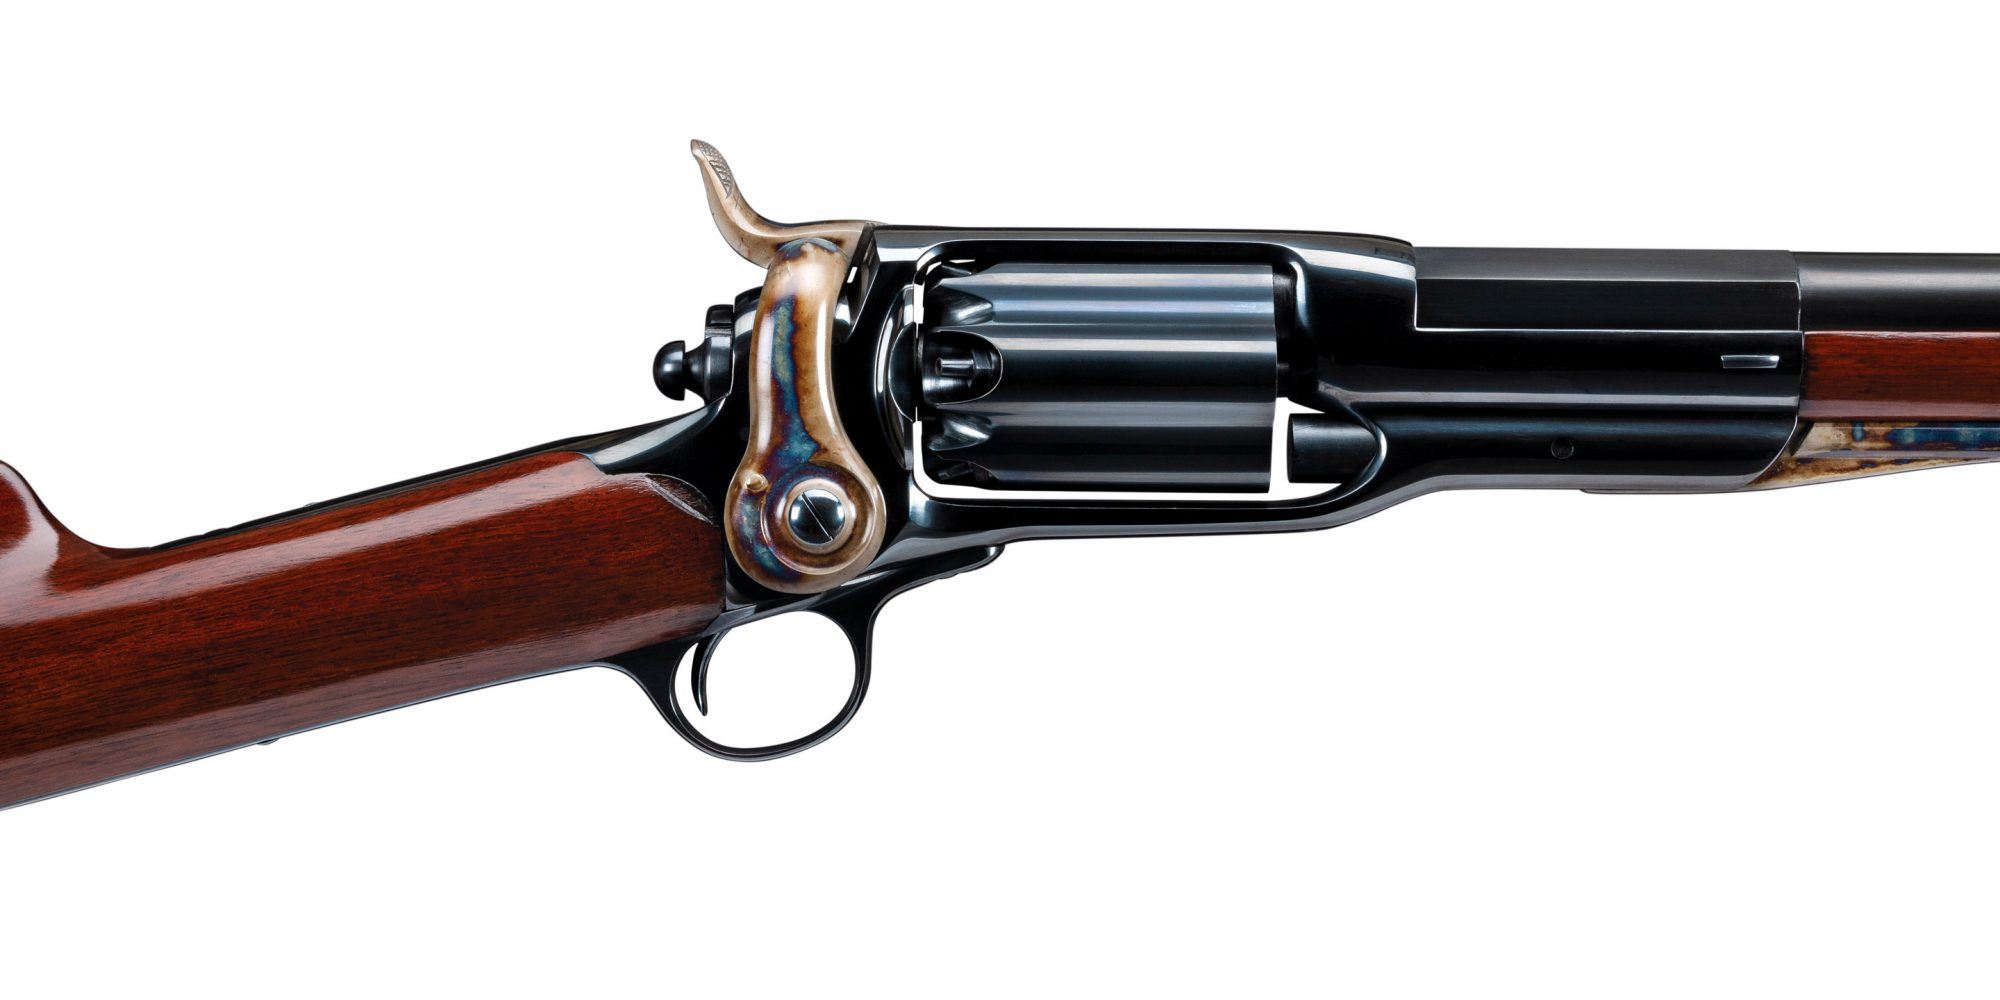 Photo of a rare Colt Model 1855 revolving 20 gauge shotgun after restoration by Turnbull Restoration of Bloomfield, NY